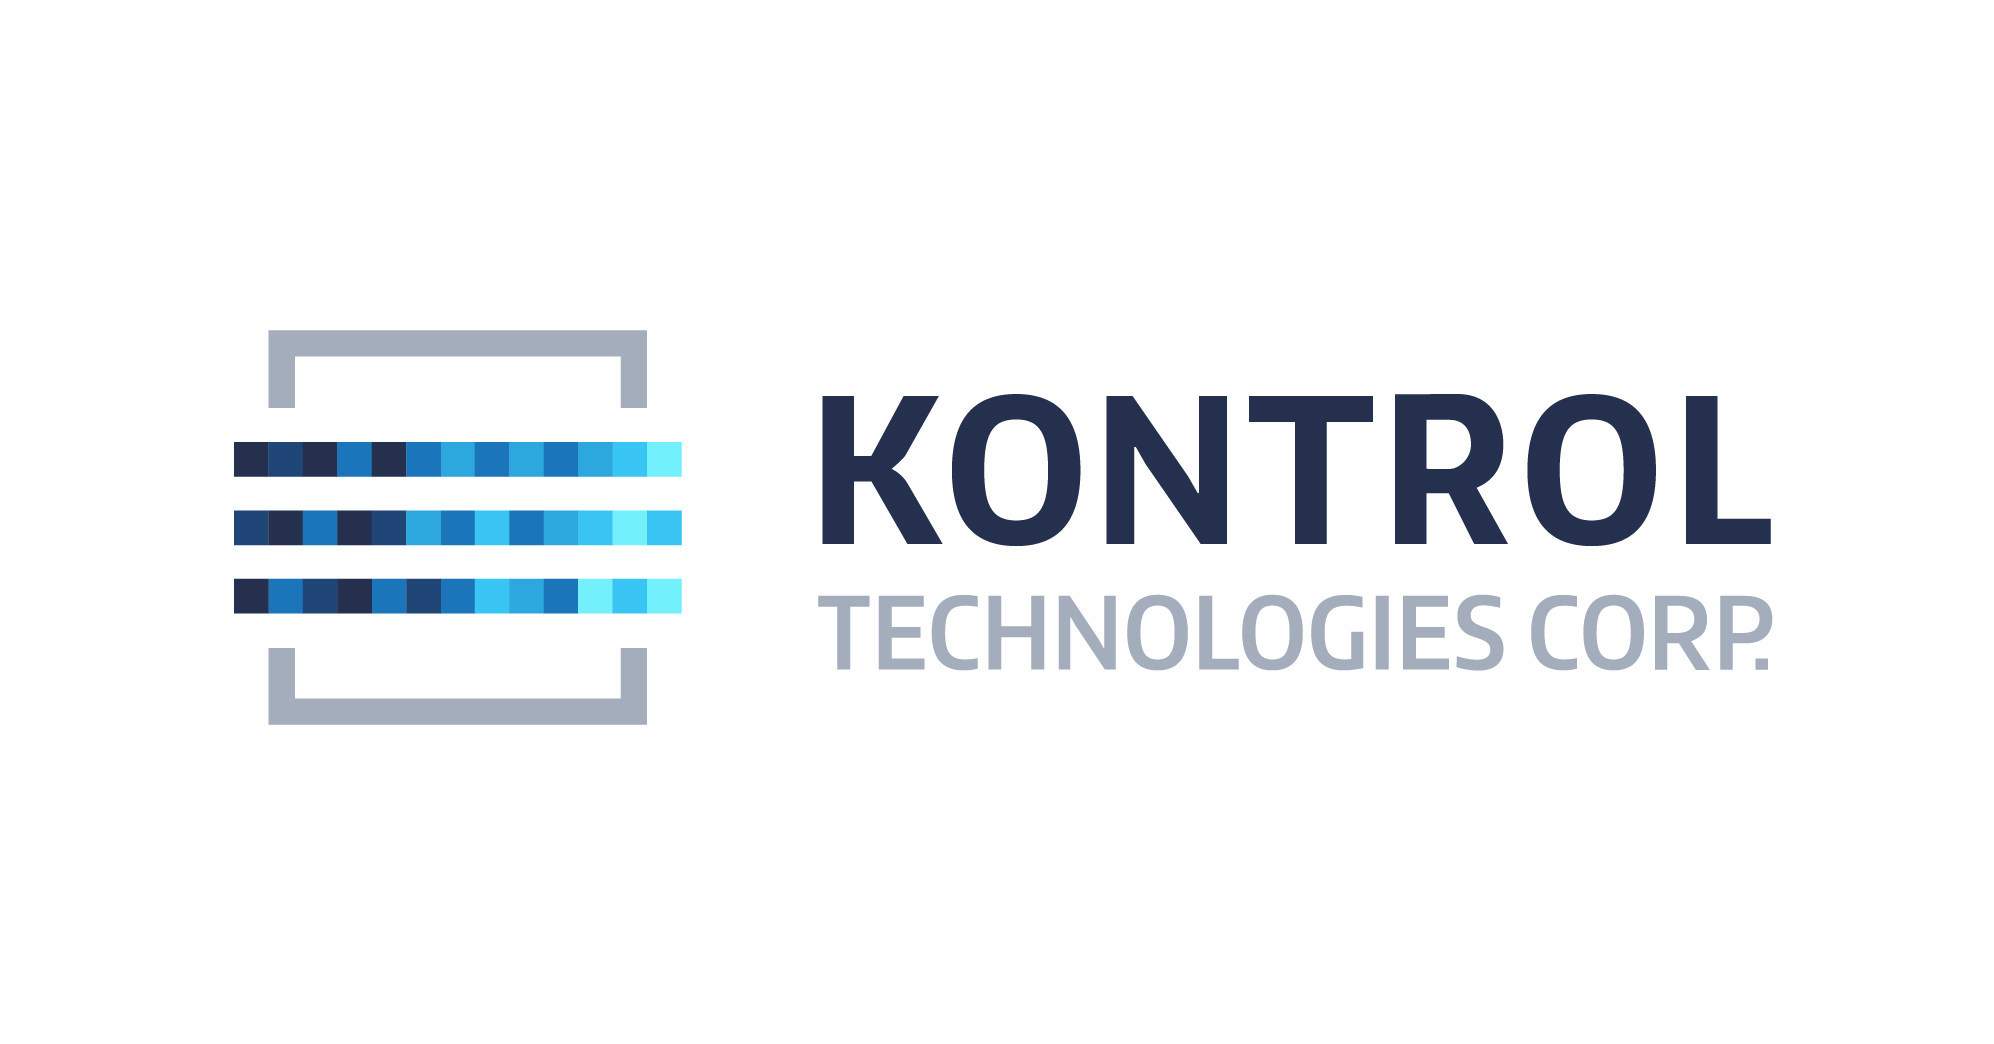 Kontrol Technologies Announces Fiscal Year End 2020 Financial Results